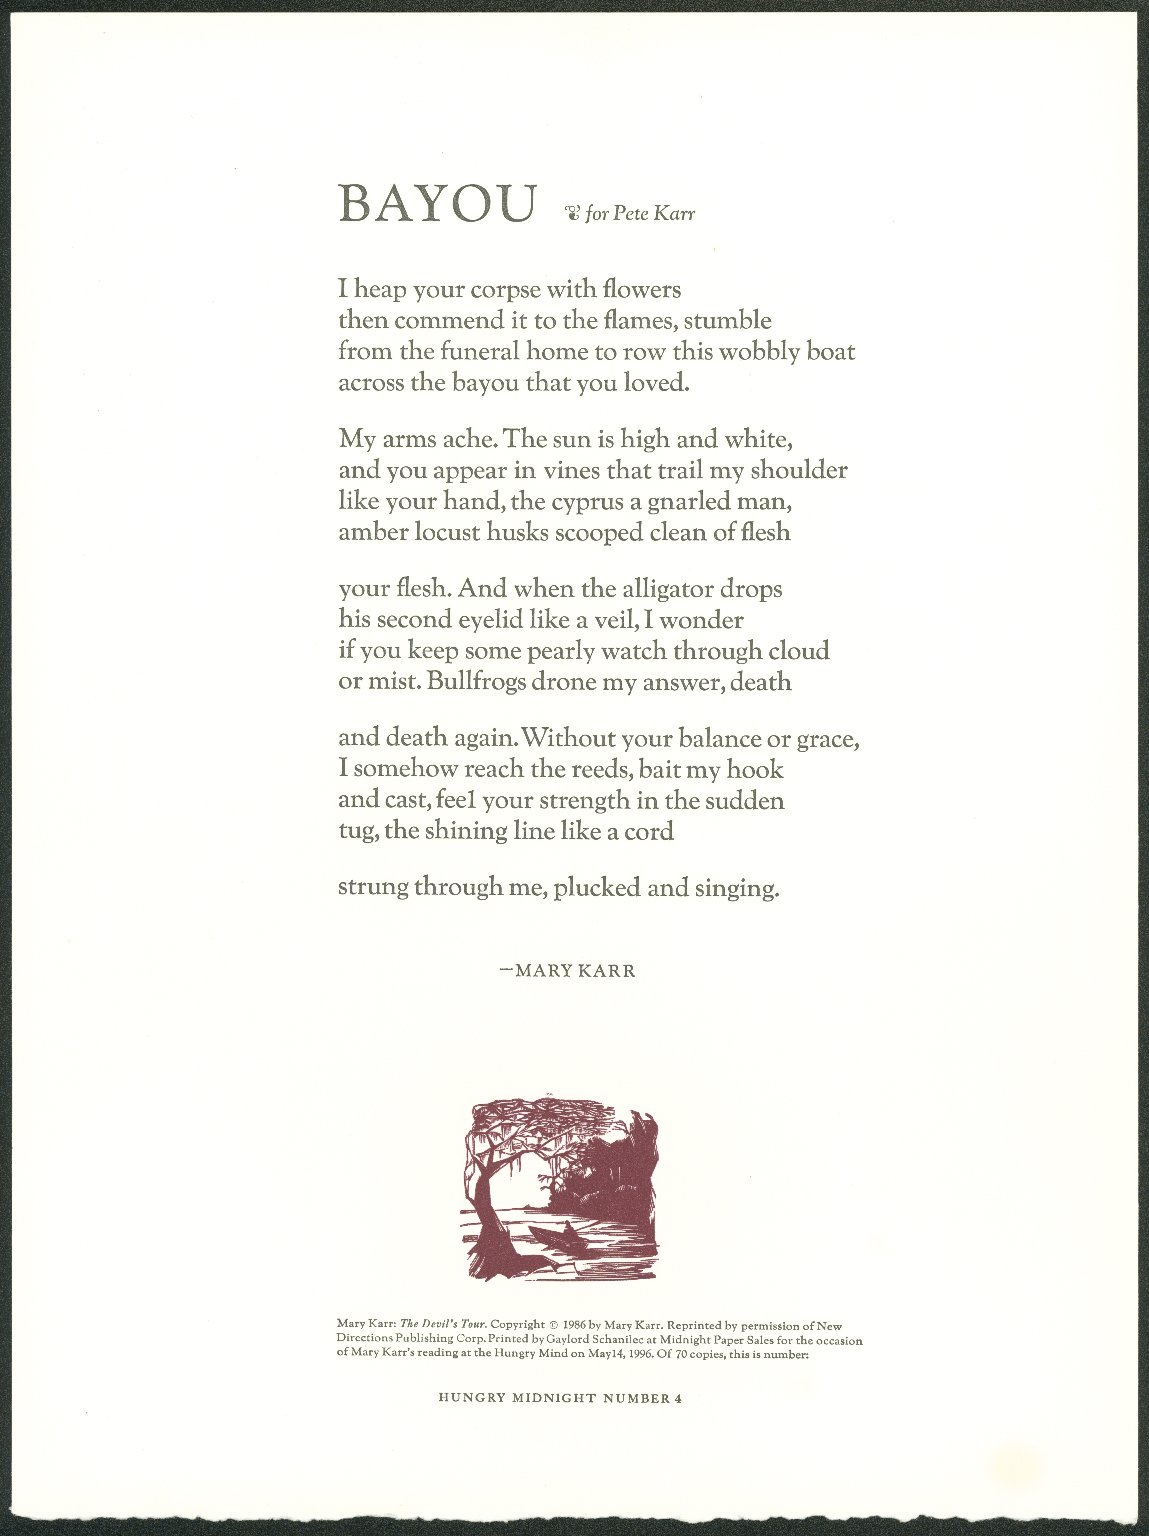 Bayou: for Pete Karr [broadside]